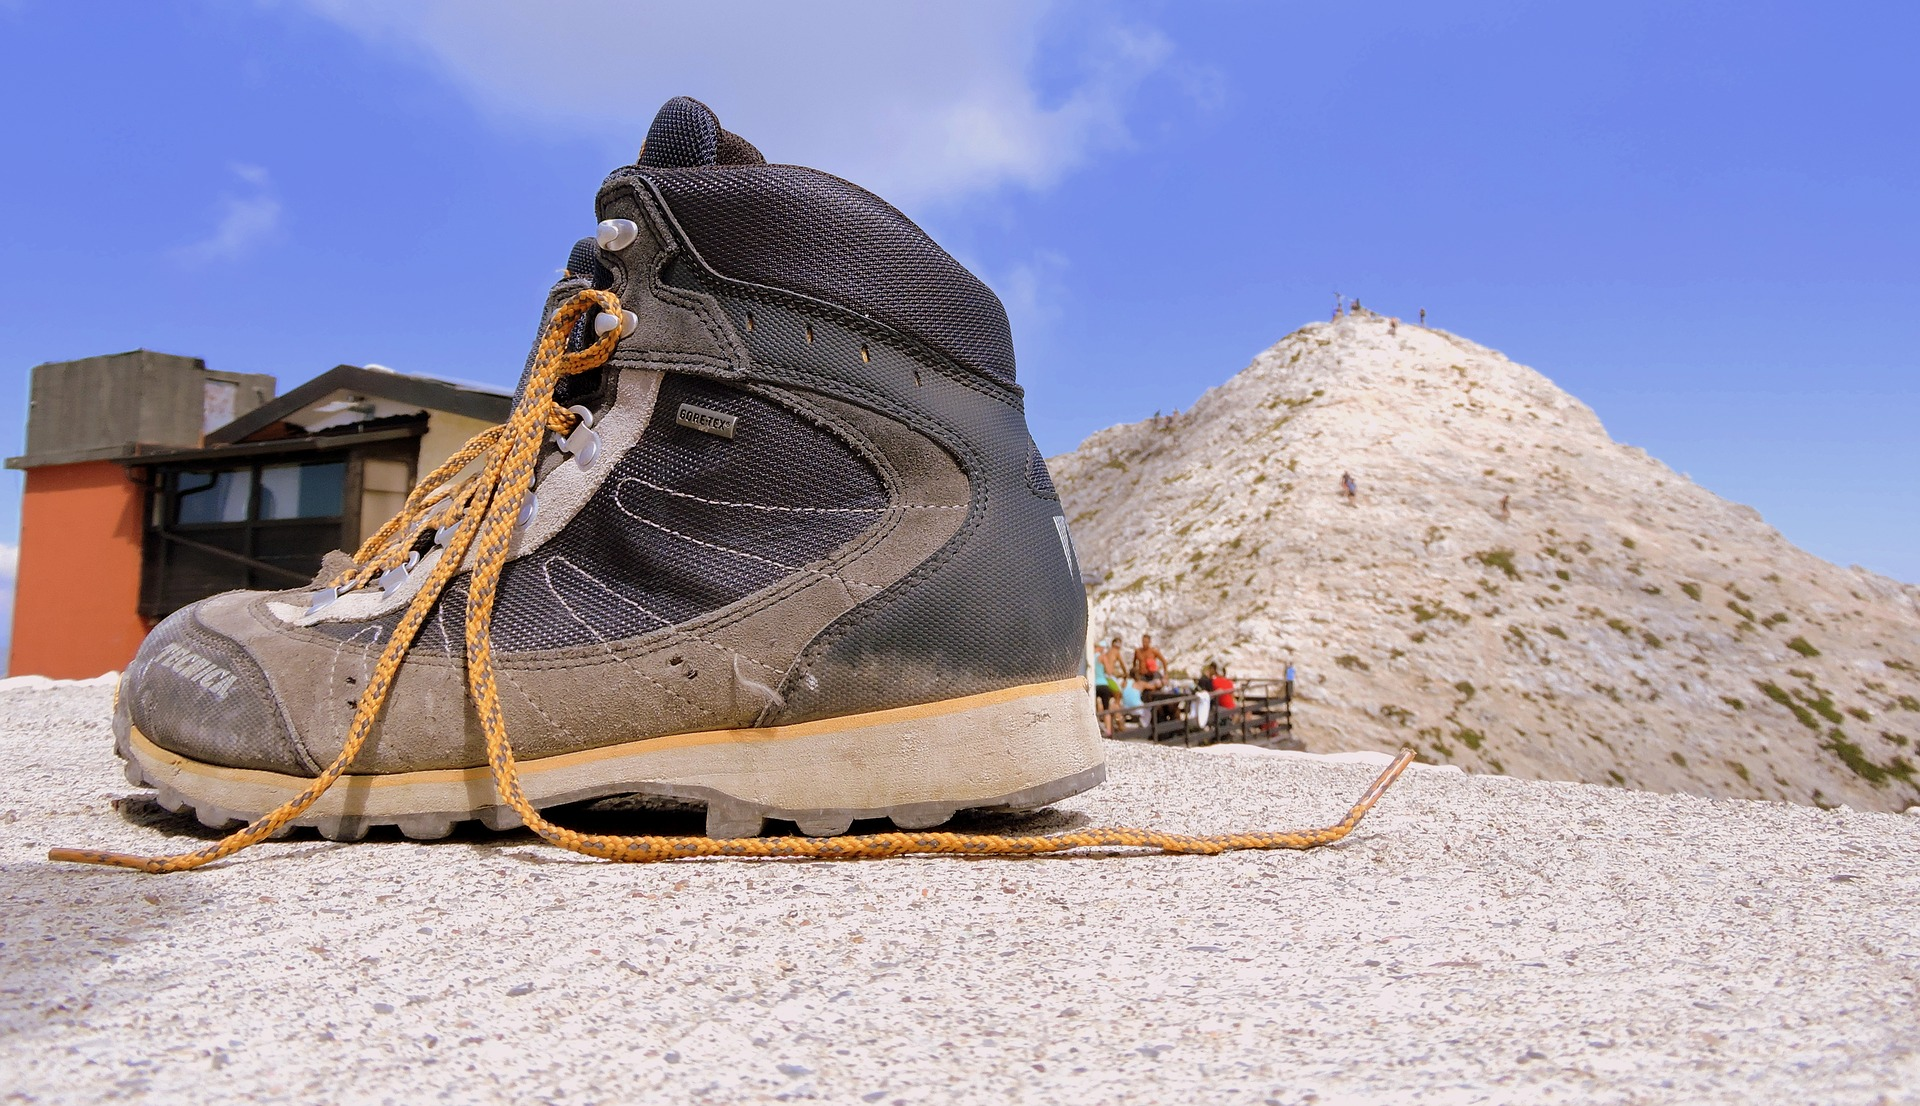 A lone hiking boot sits on a rock, laces askew.